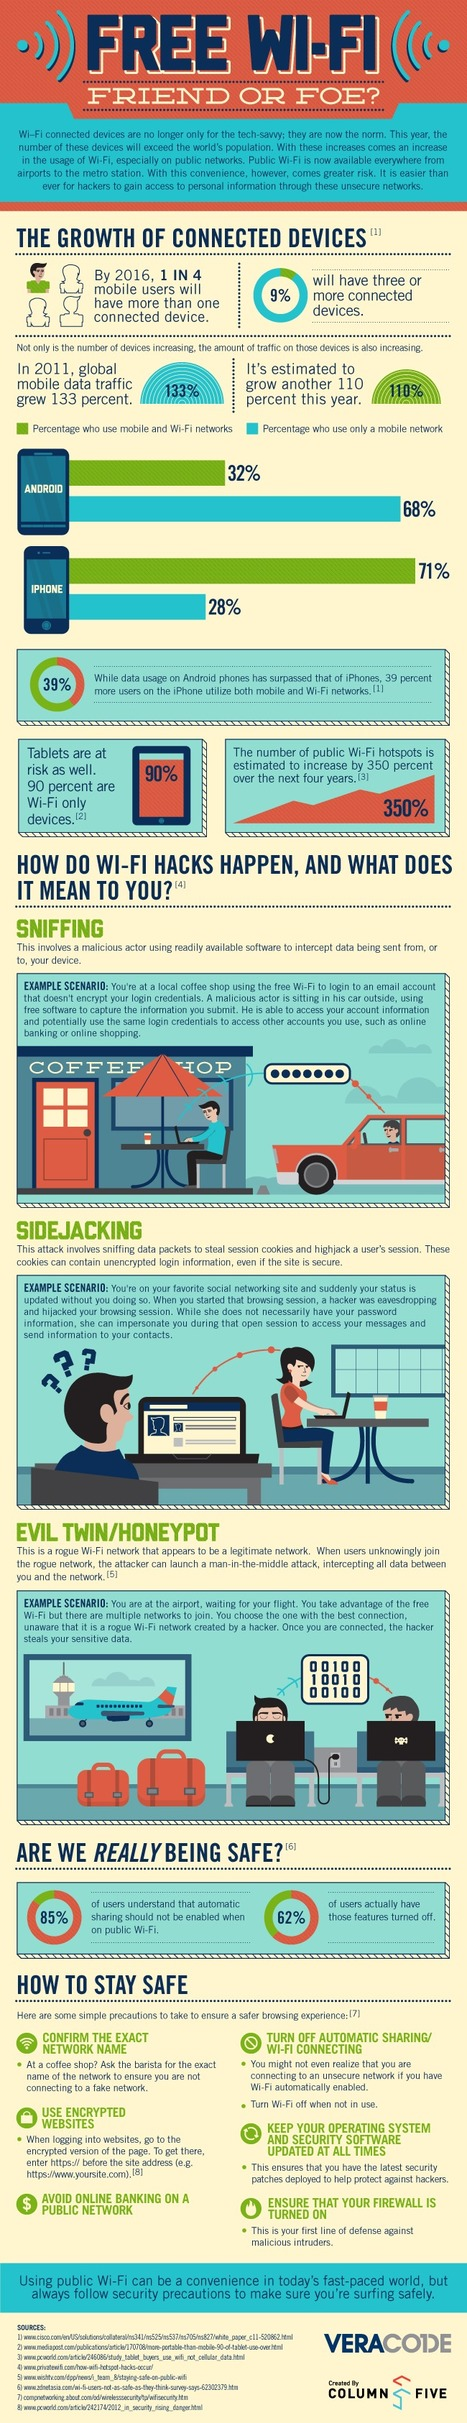 Infographic: Is free Wi-Fi a friend or foe? | Learning & Learning Technologies - Interest Piques | Scoop.it